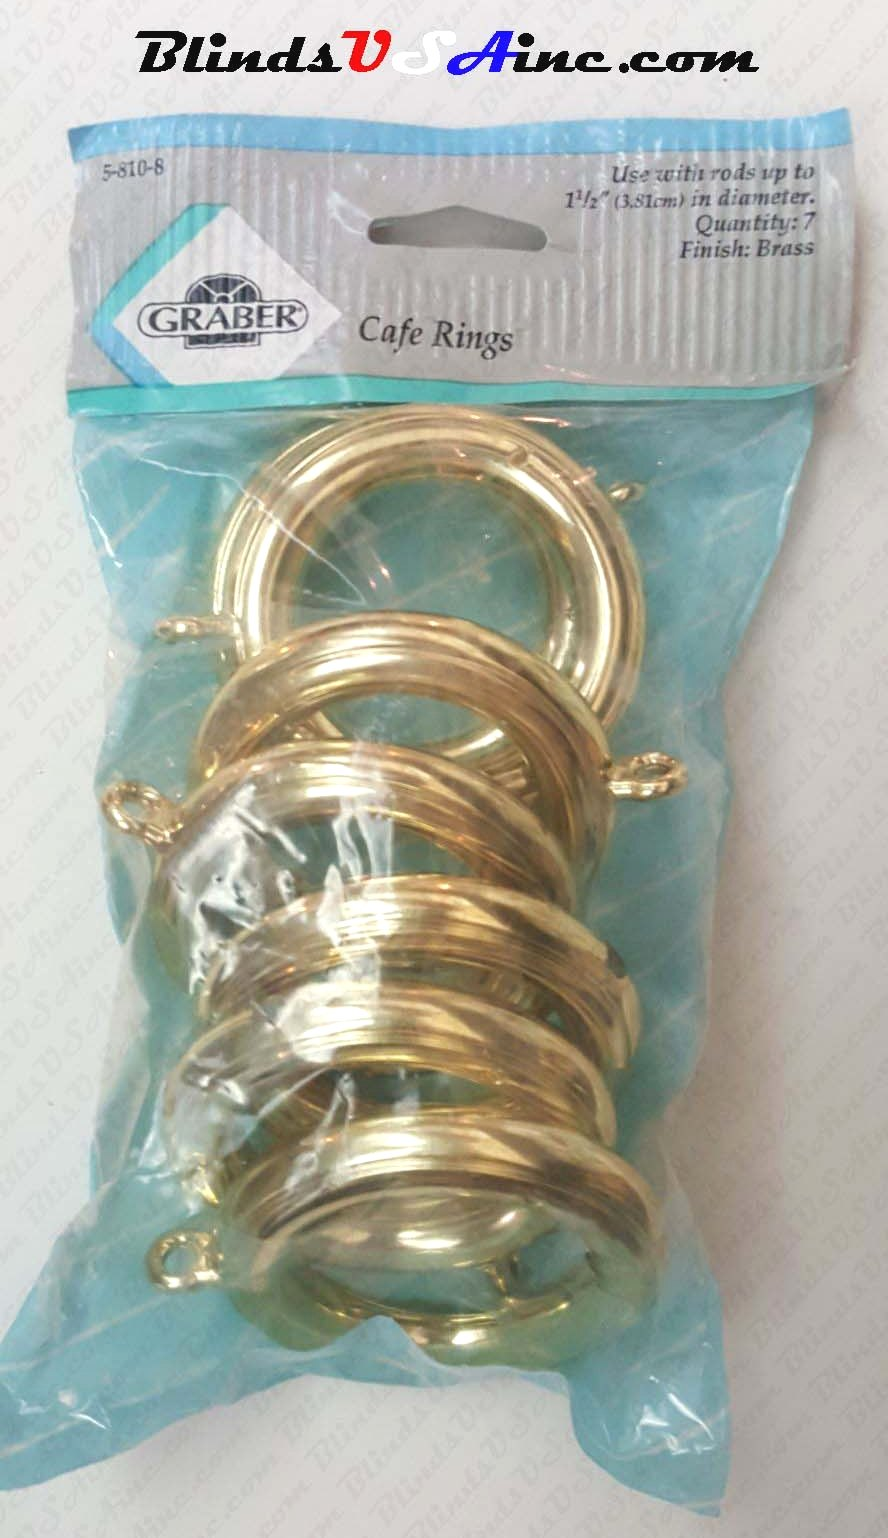 "Graber 1-1/2"" Cafe Rings with Eyelet, Finish: Brass, pack of 7, Part # 5-810-8 a"